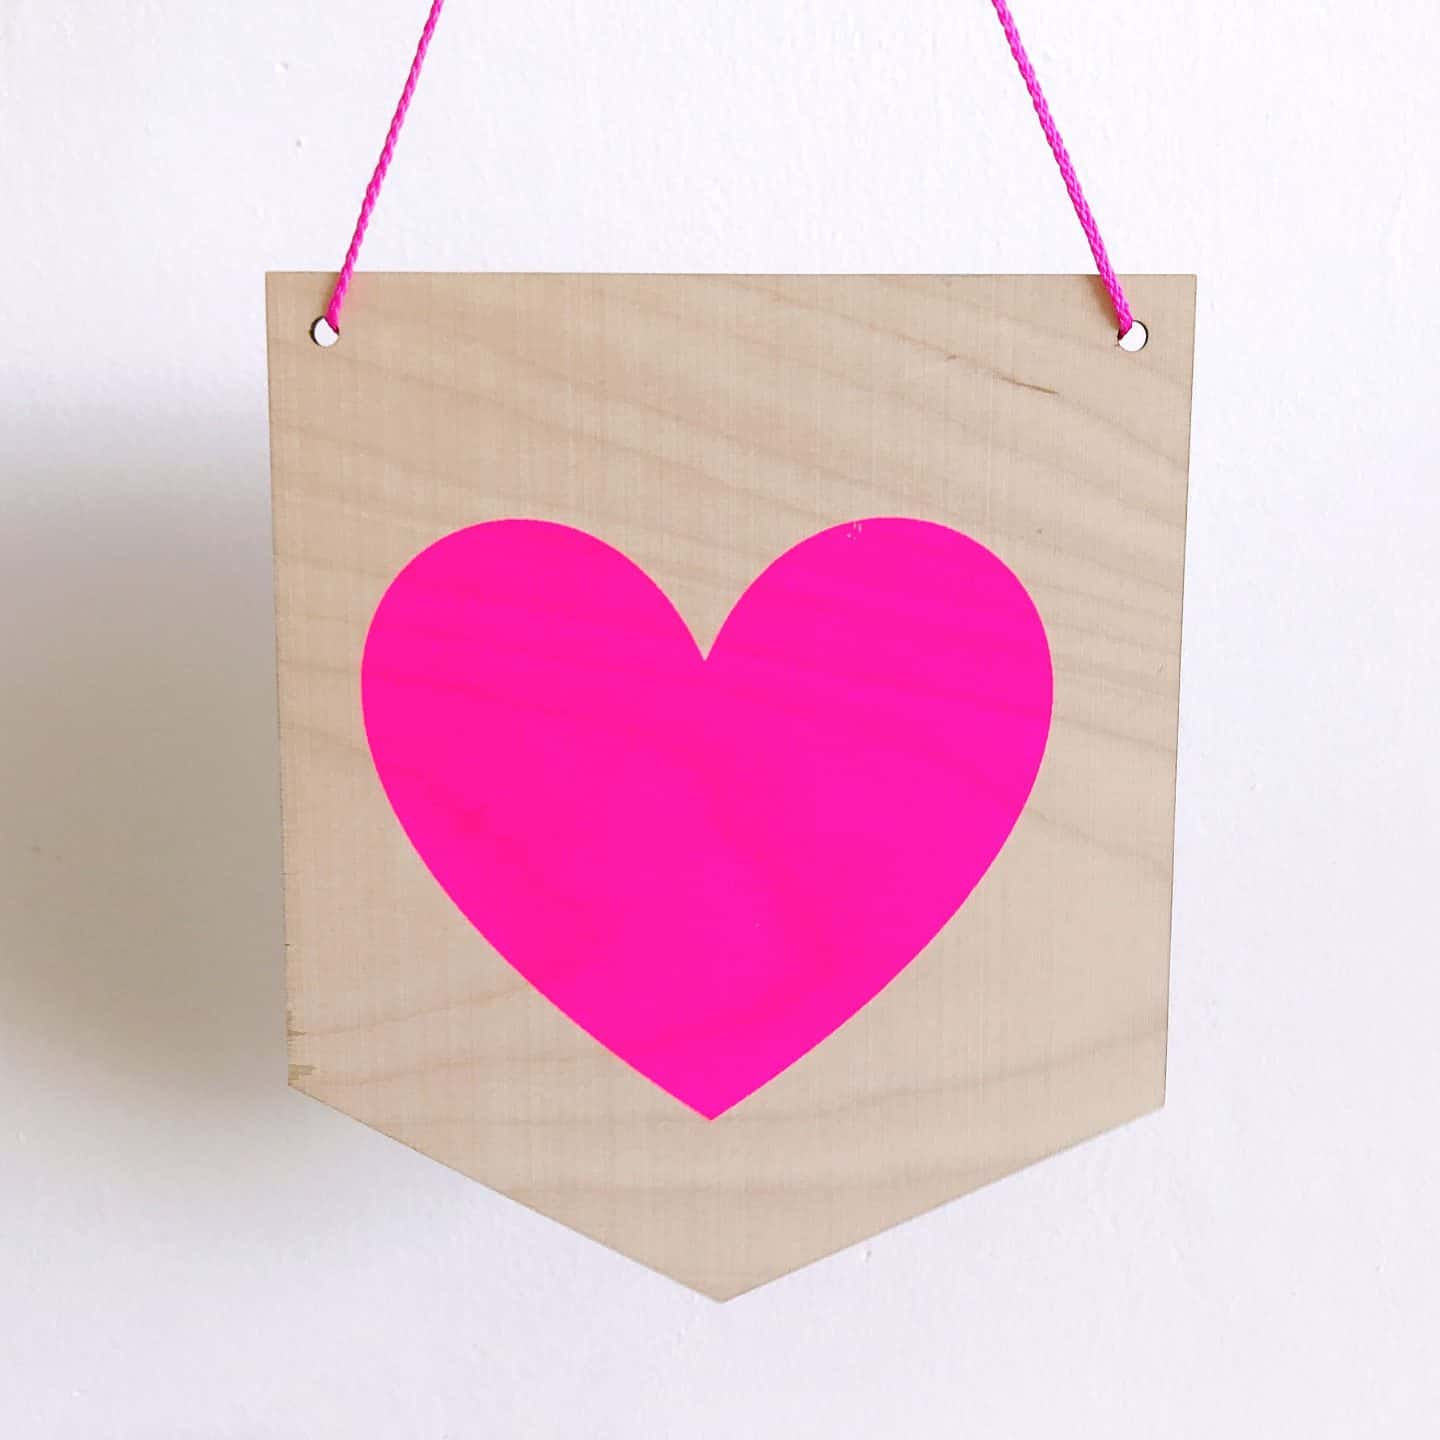 Pink screen printed heart by Flat 102